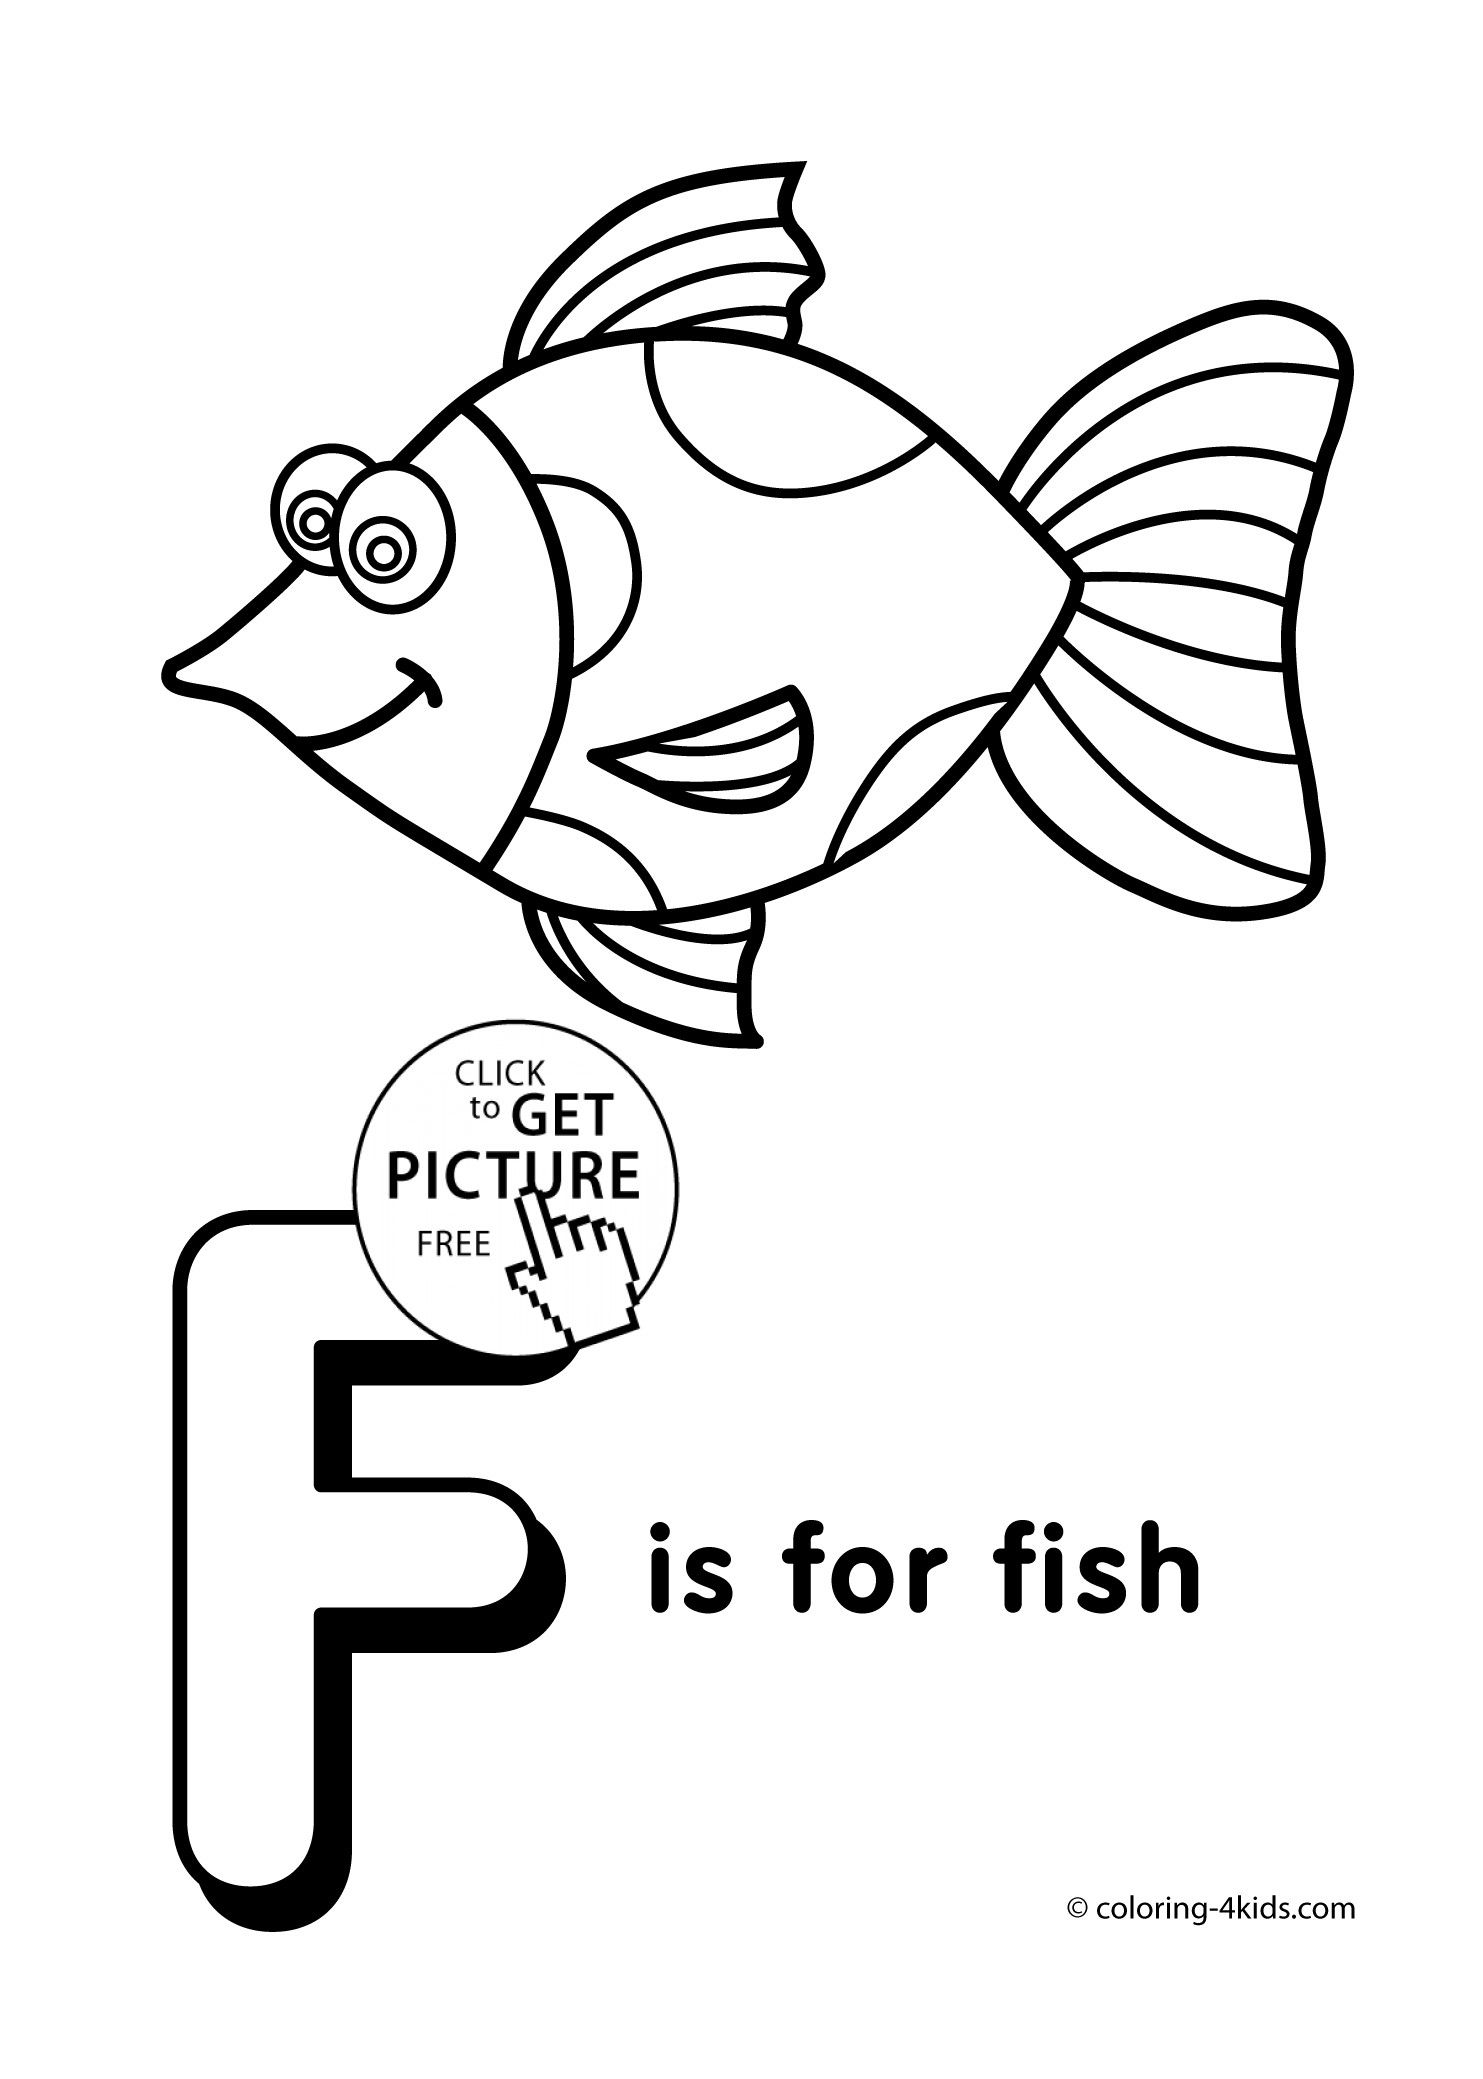 Letter F Coloring Pages For Preschoolers Free Alphabet Coloring Pages Alphabet Coloring Lettering Alphabet